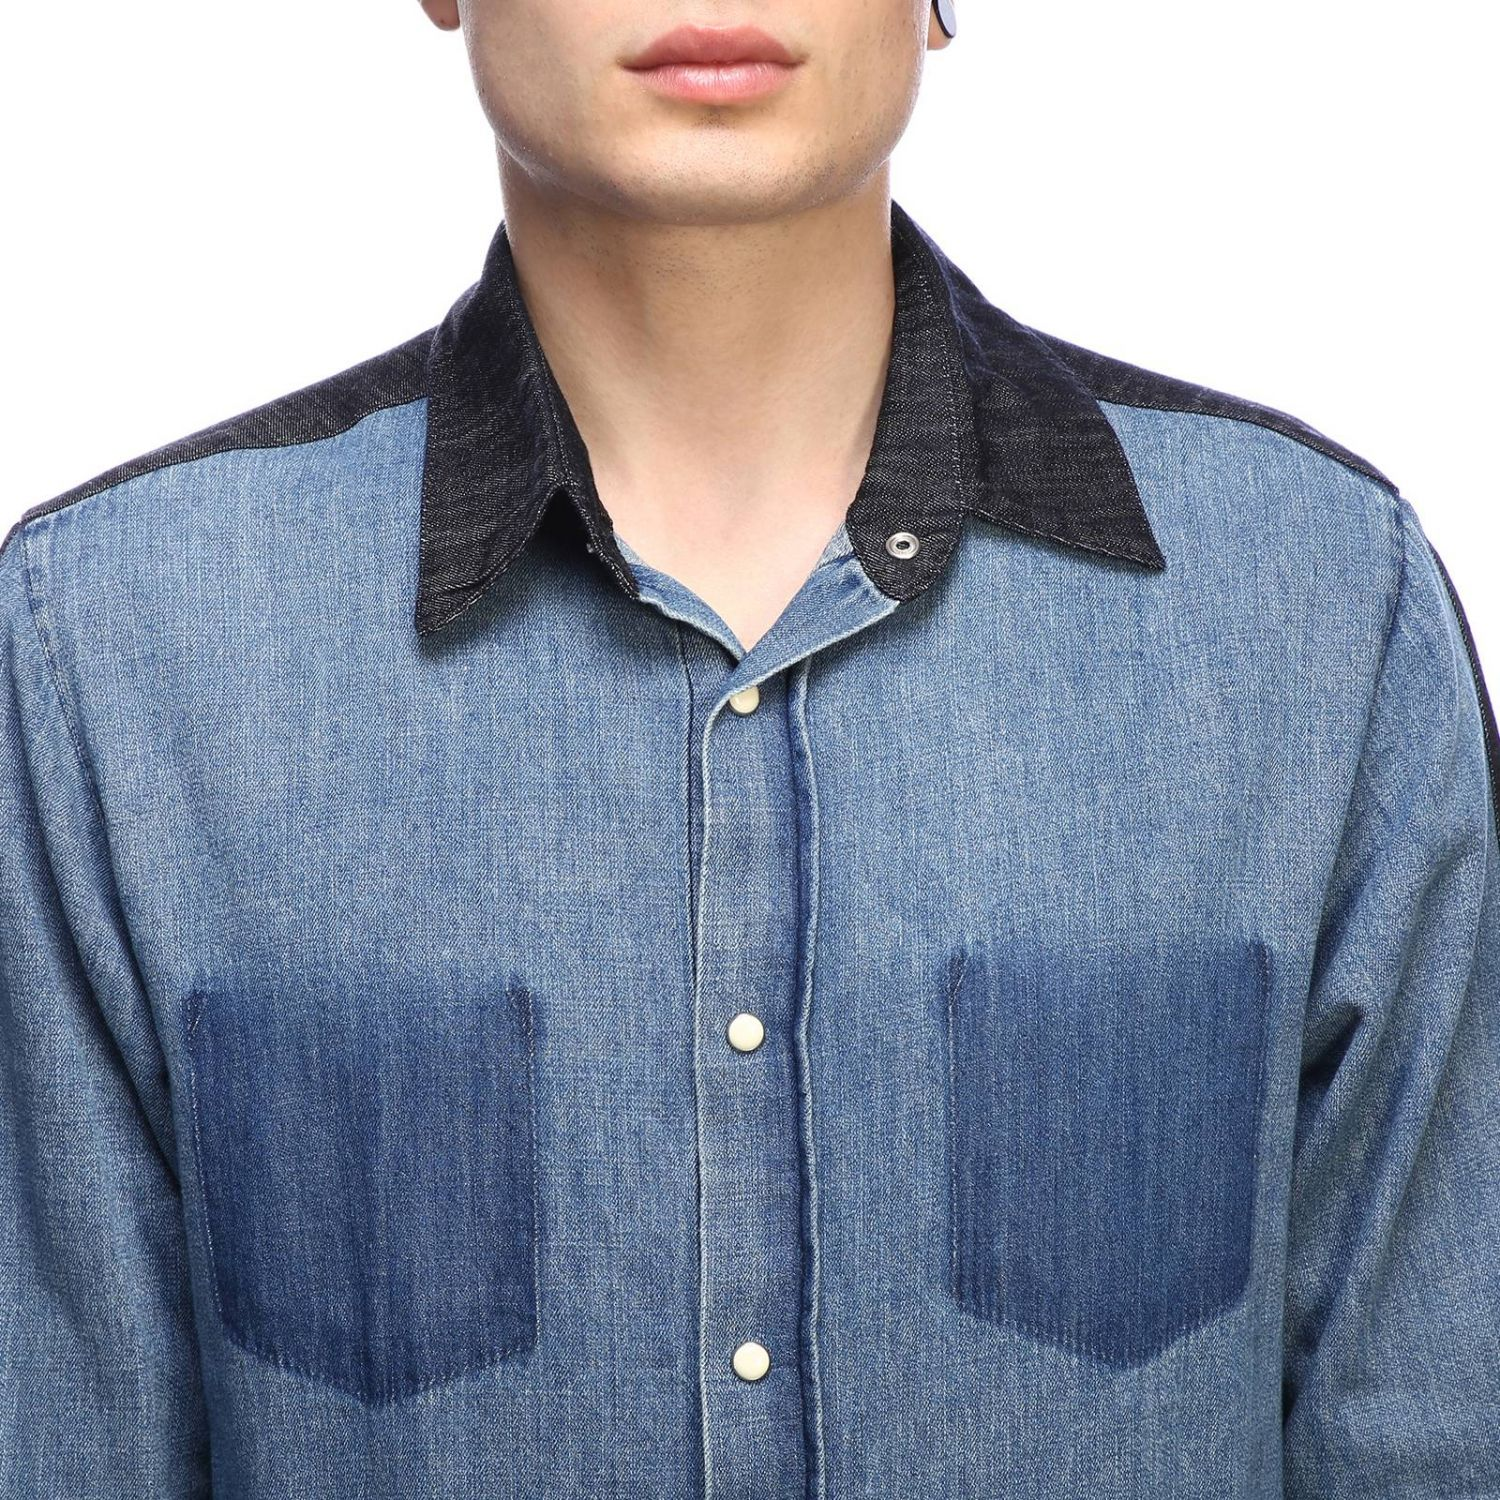 Shirt men Rta denim 4